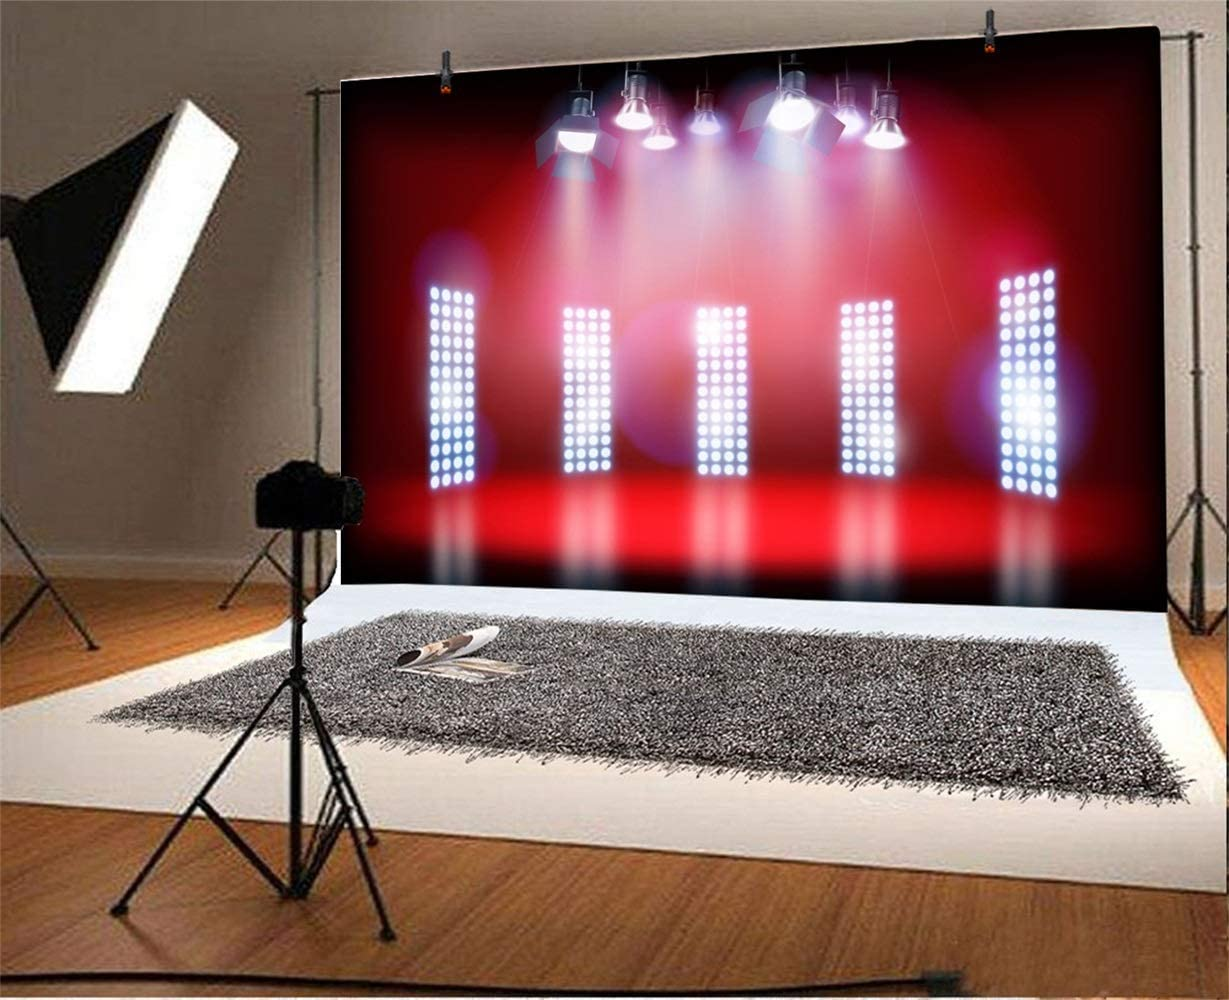 10x6.5ft Bright Red Stage Backdrop Vinyl Bright Spotlights Shiny Bar Lights Red Floor Photography Background Performance Live Show TV Programming Banner Singer Shoot Studio Props